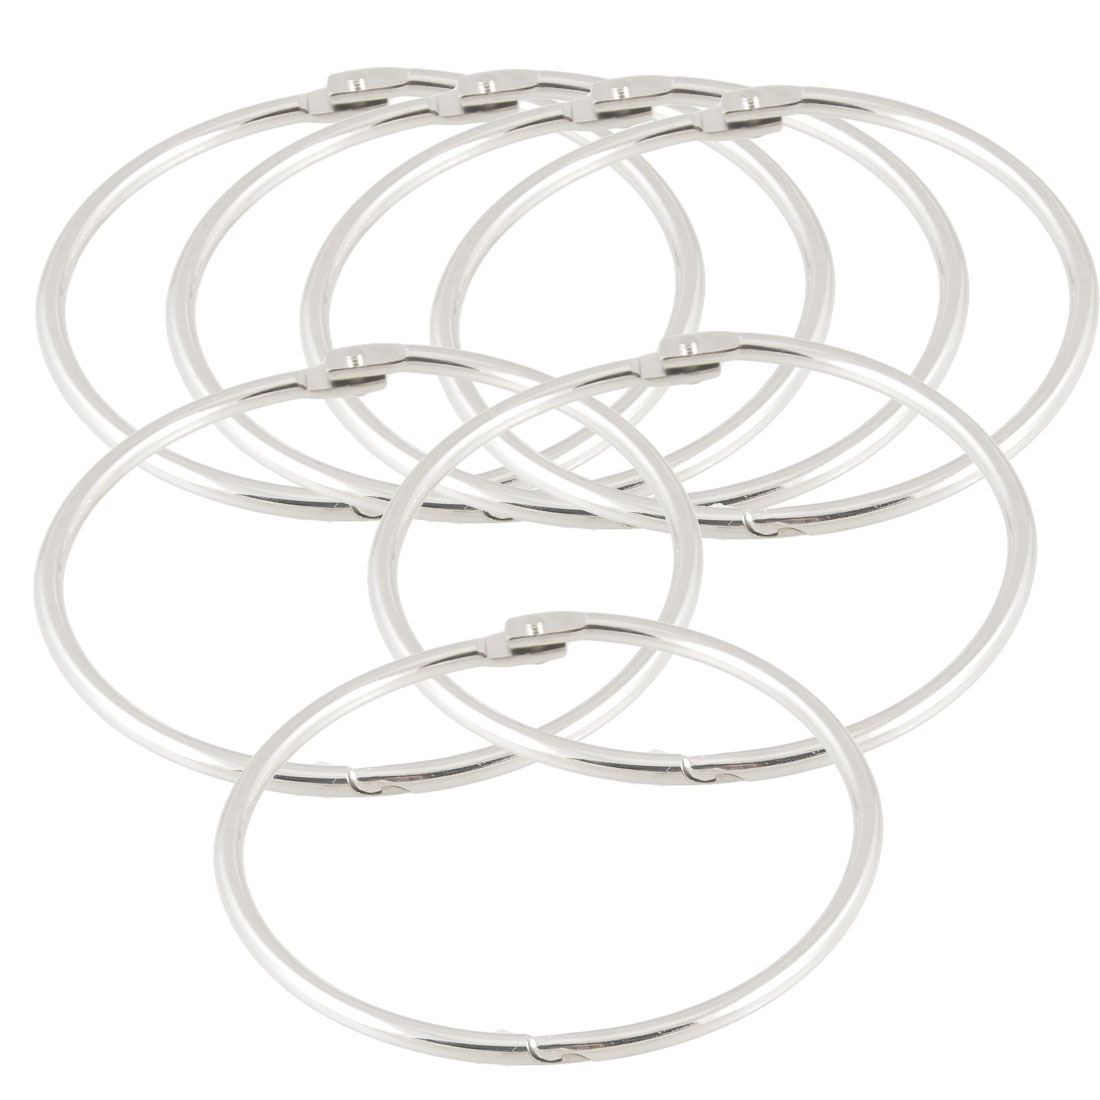 "7 Pcs Metal 3.3"" Loose Leaf Rings Binder Keyrings for Scrapbooking Book"